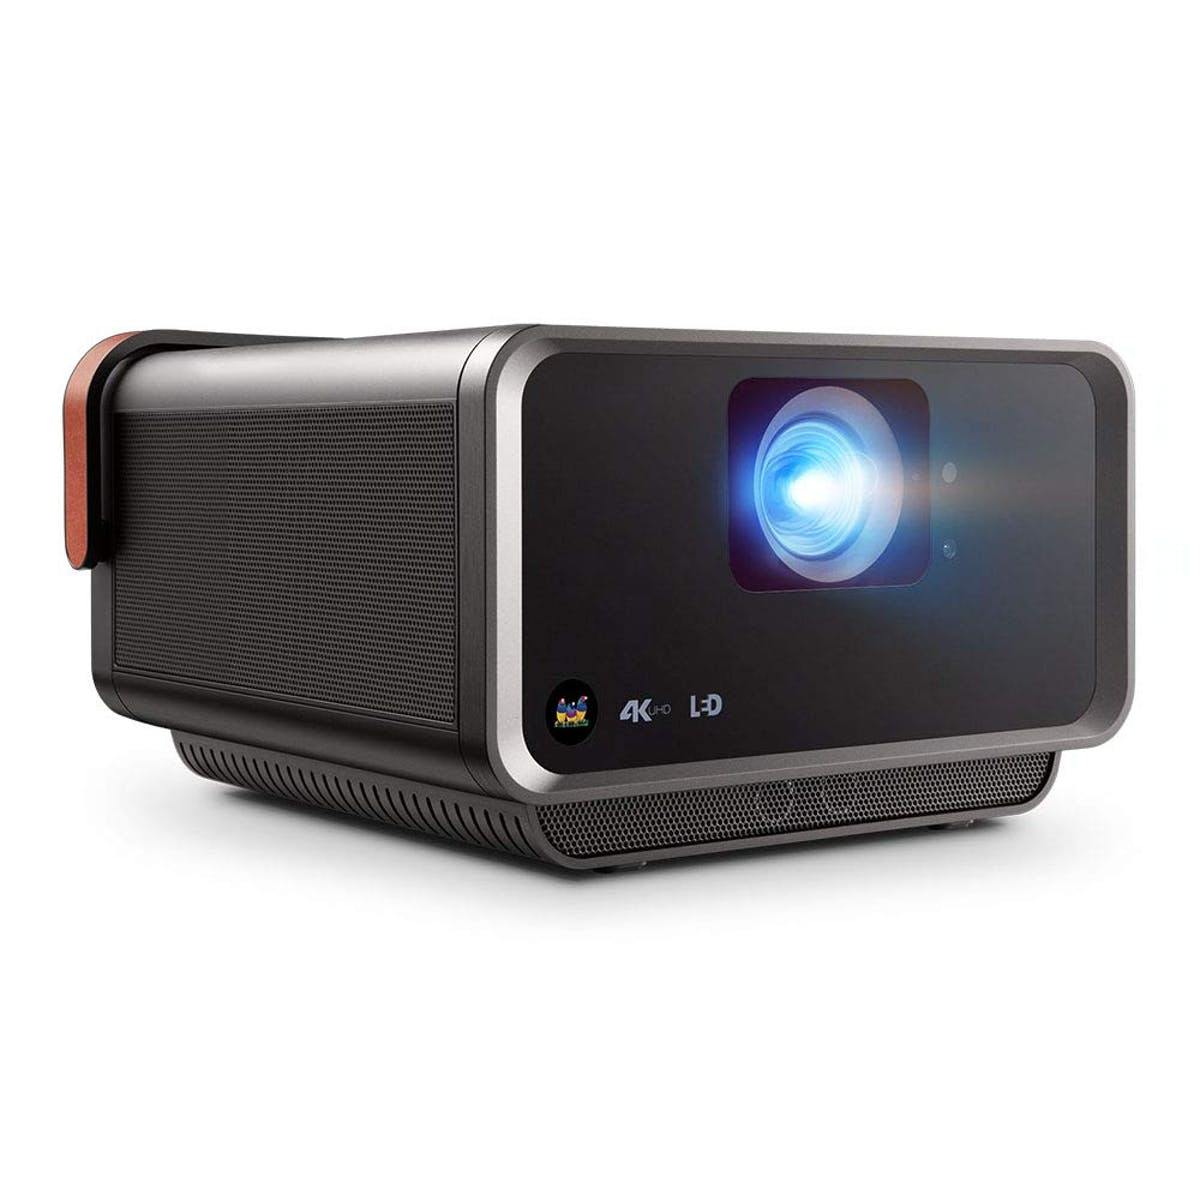 Projectors Are Cooler Than TVs. Here Are a Few We're Excited For